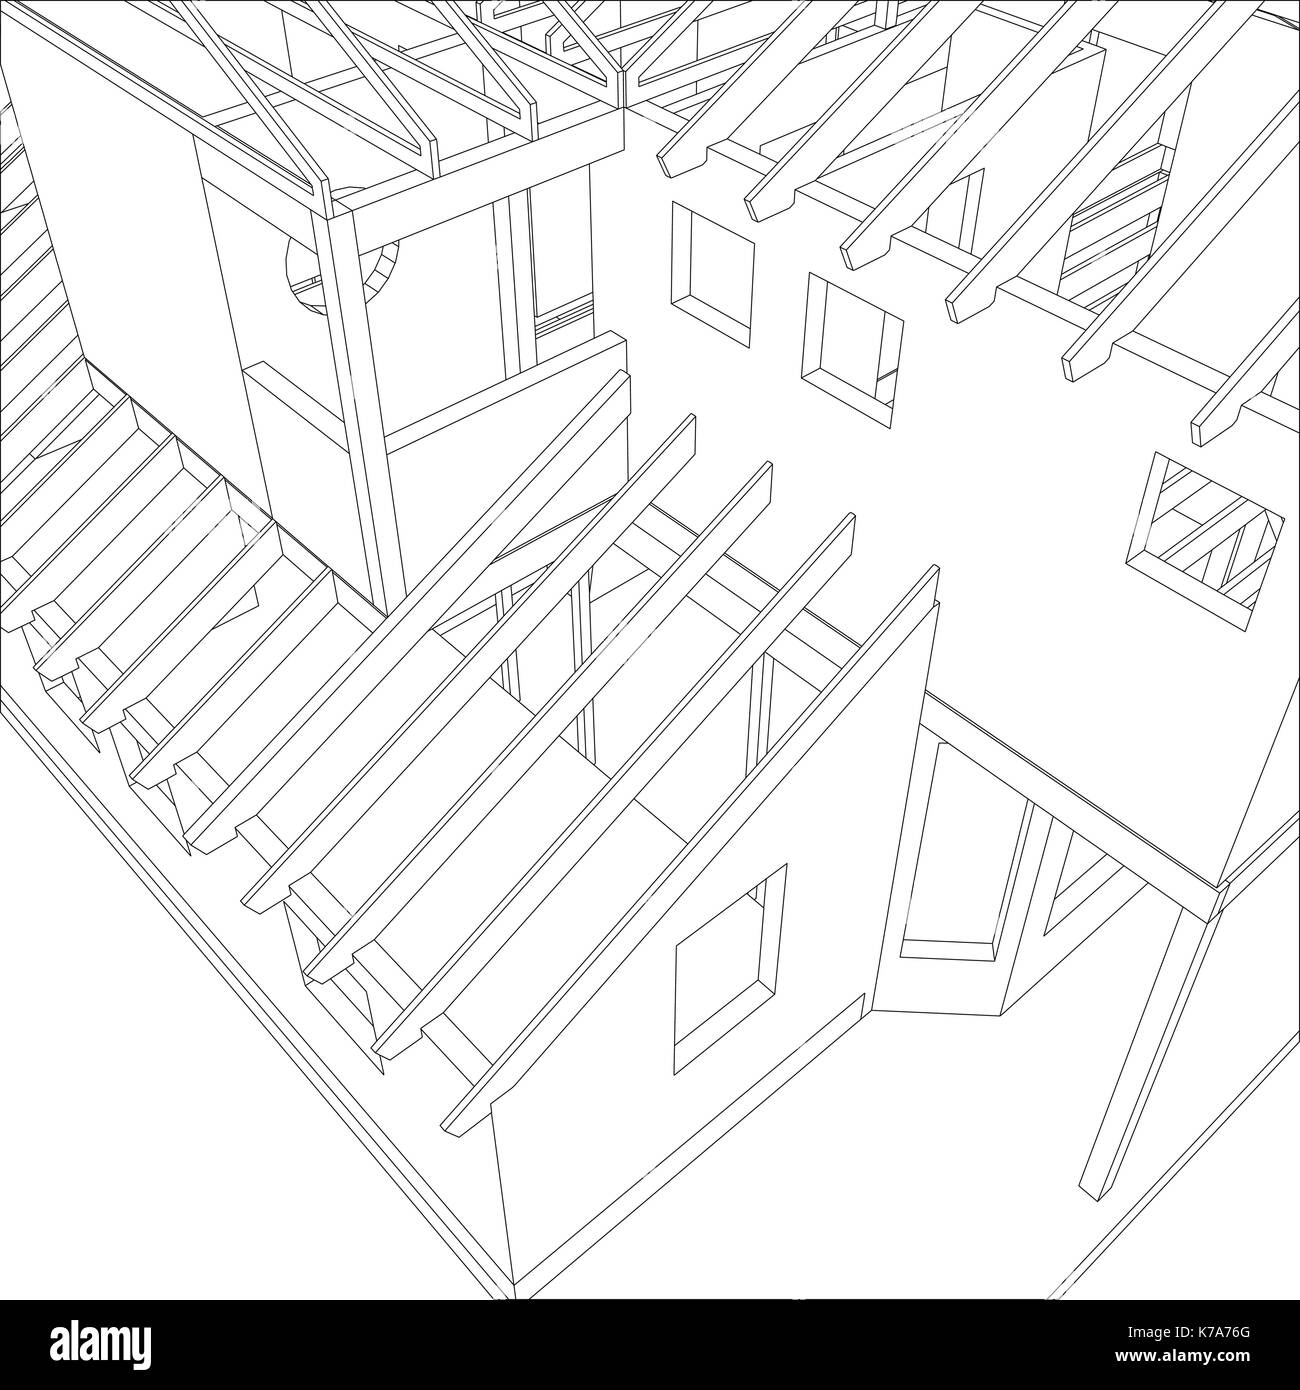 abstract architectural 3d drawing of apartment house vector created stock vector art illustration vector image 159421096 alamy - 3d Drawing Of House